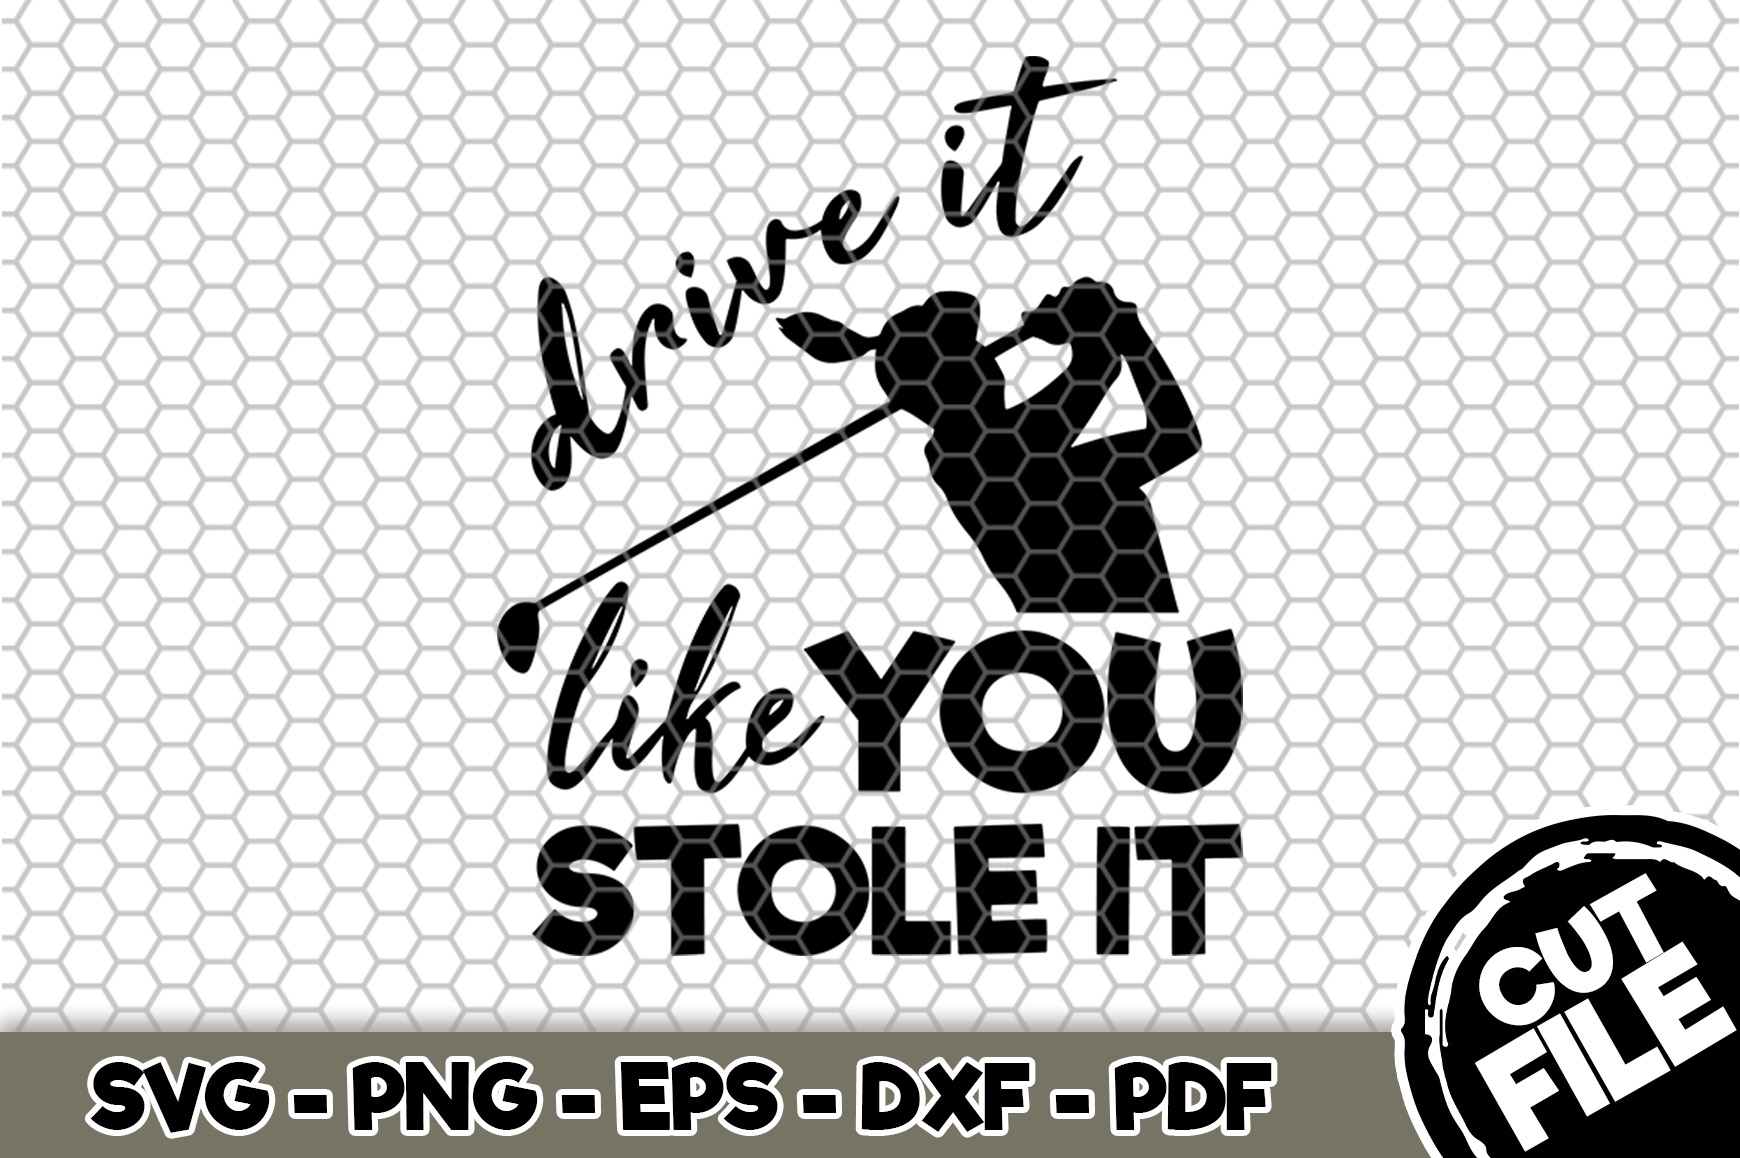 Download Free Drive It Like You Stole It Golf Svg Graphic By Svgexpress for Cricut Explore, Silhouette and other cutting machines.